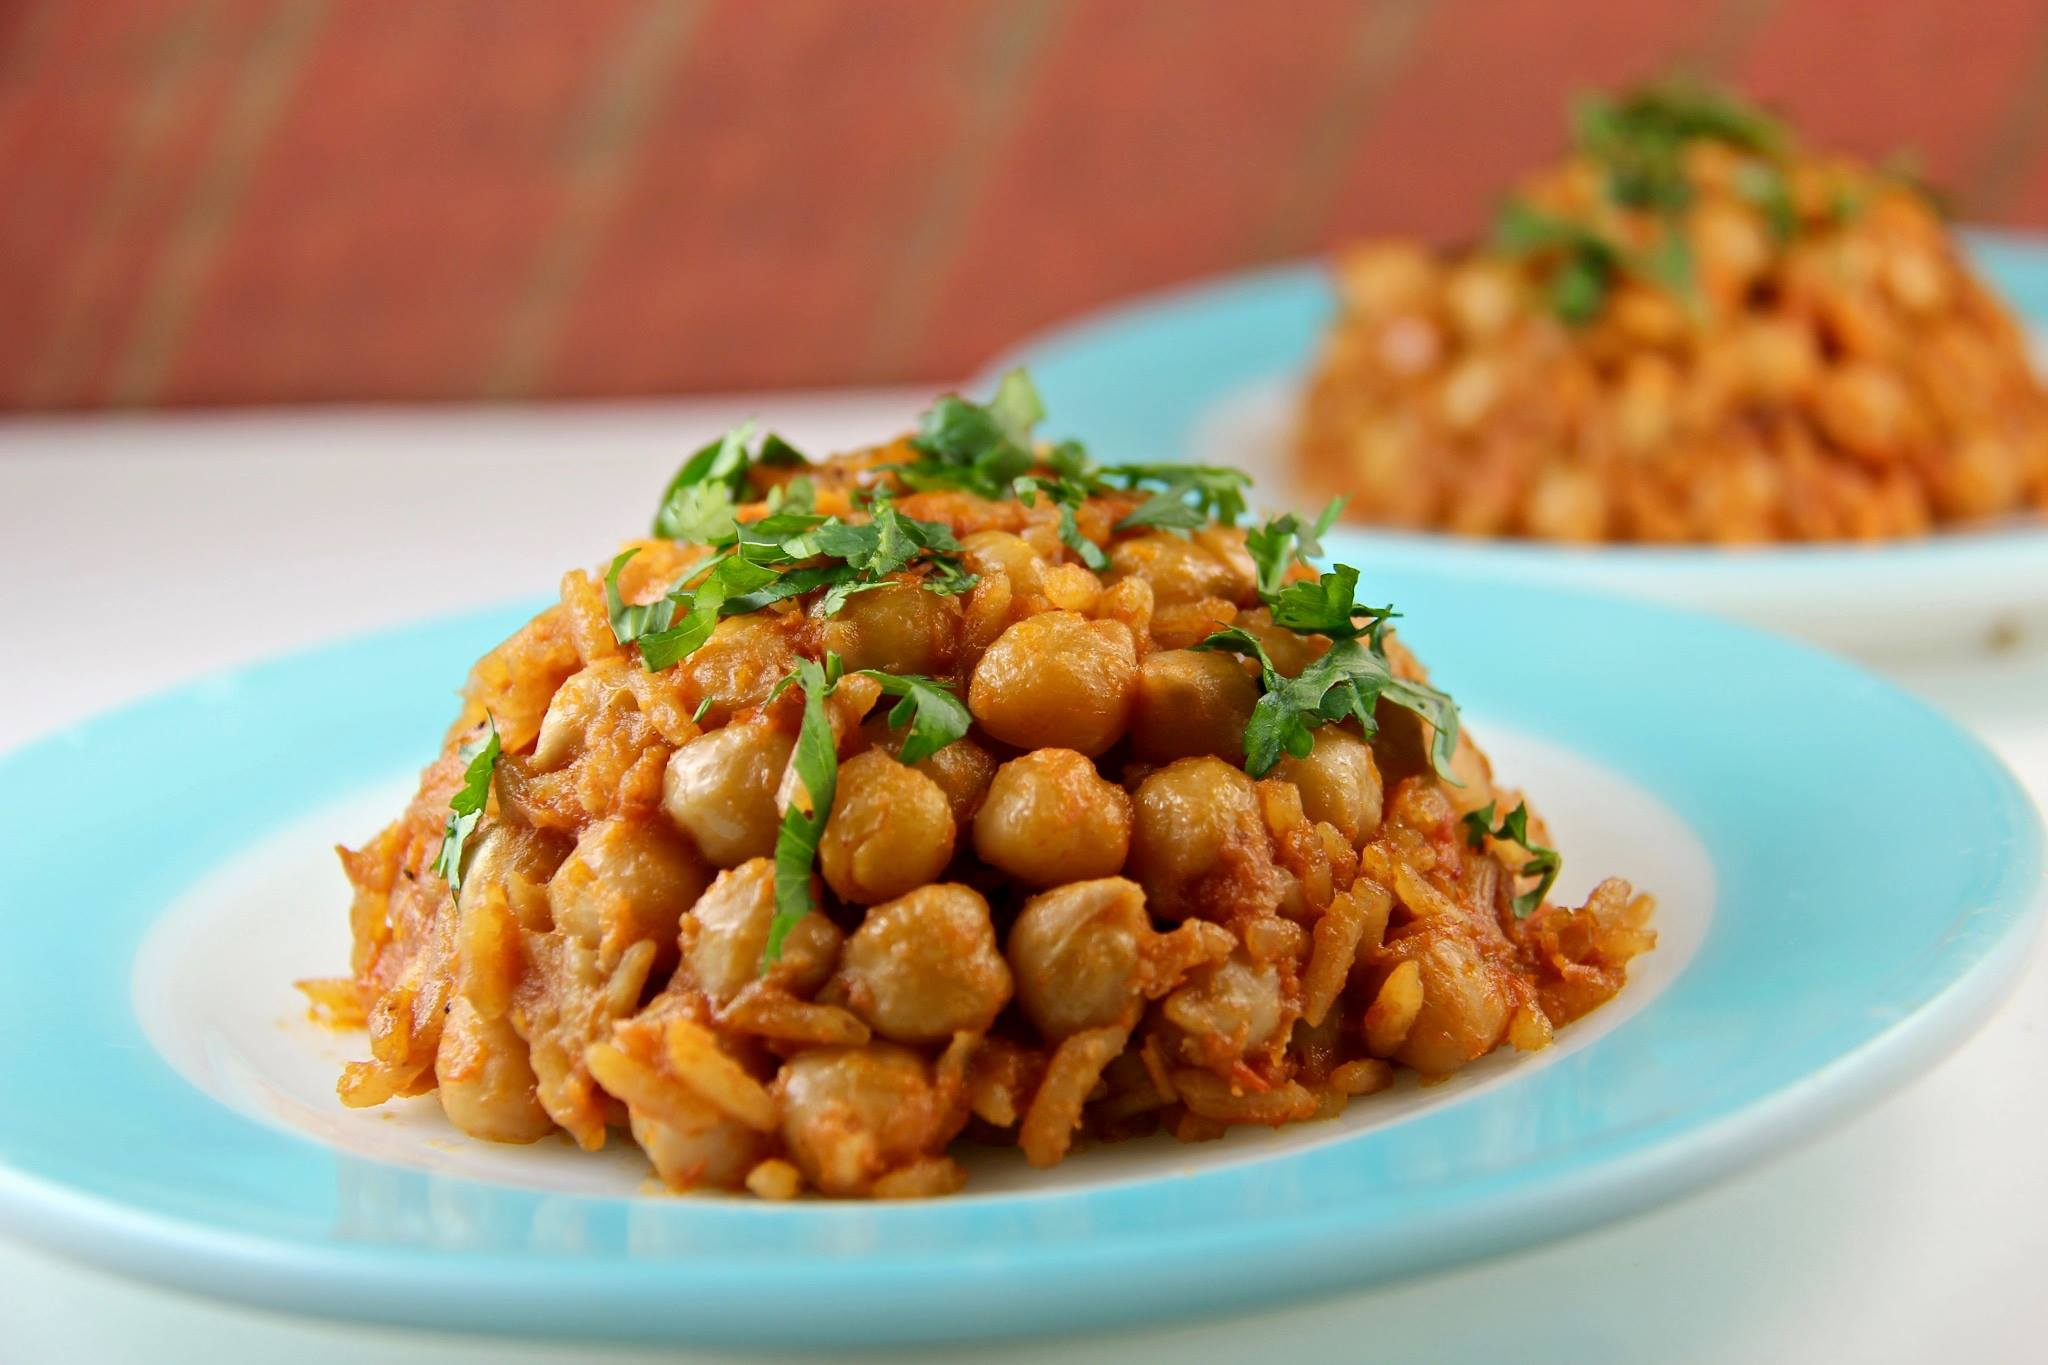 Mediterranean Diet Recipes: Turkish Garbanzo Bean Pilaf